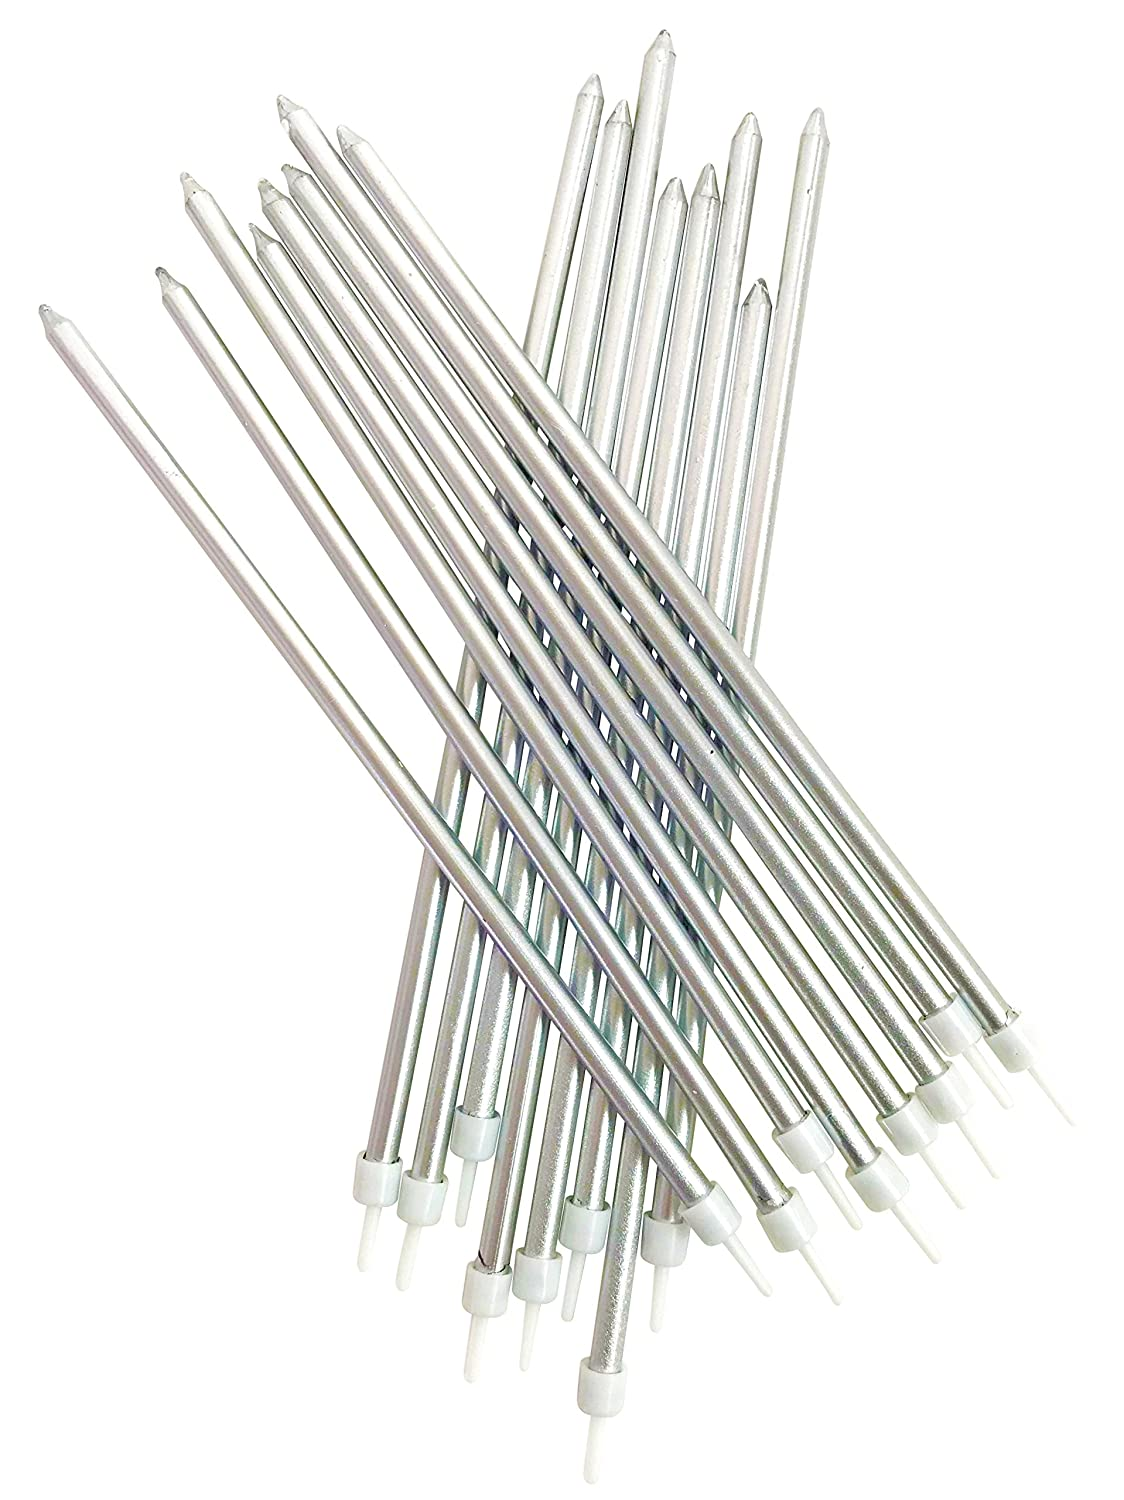 tall silver birthday cake candles 16 per pack 18cm